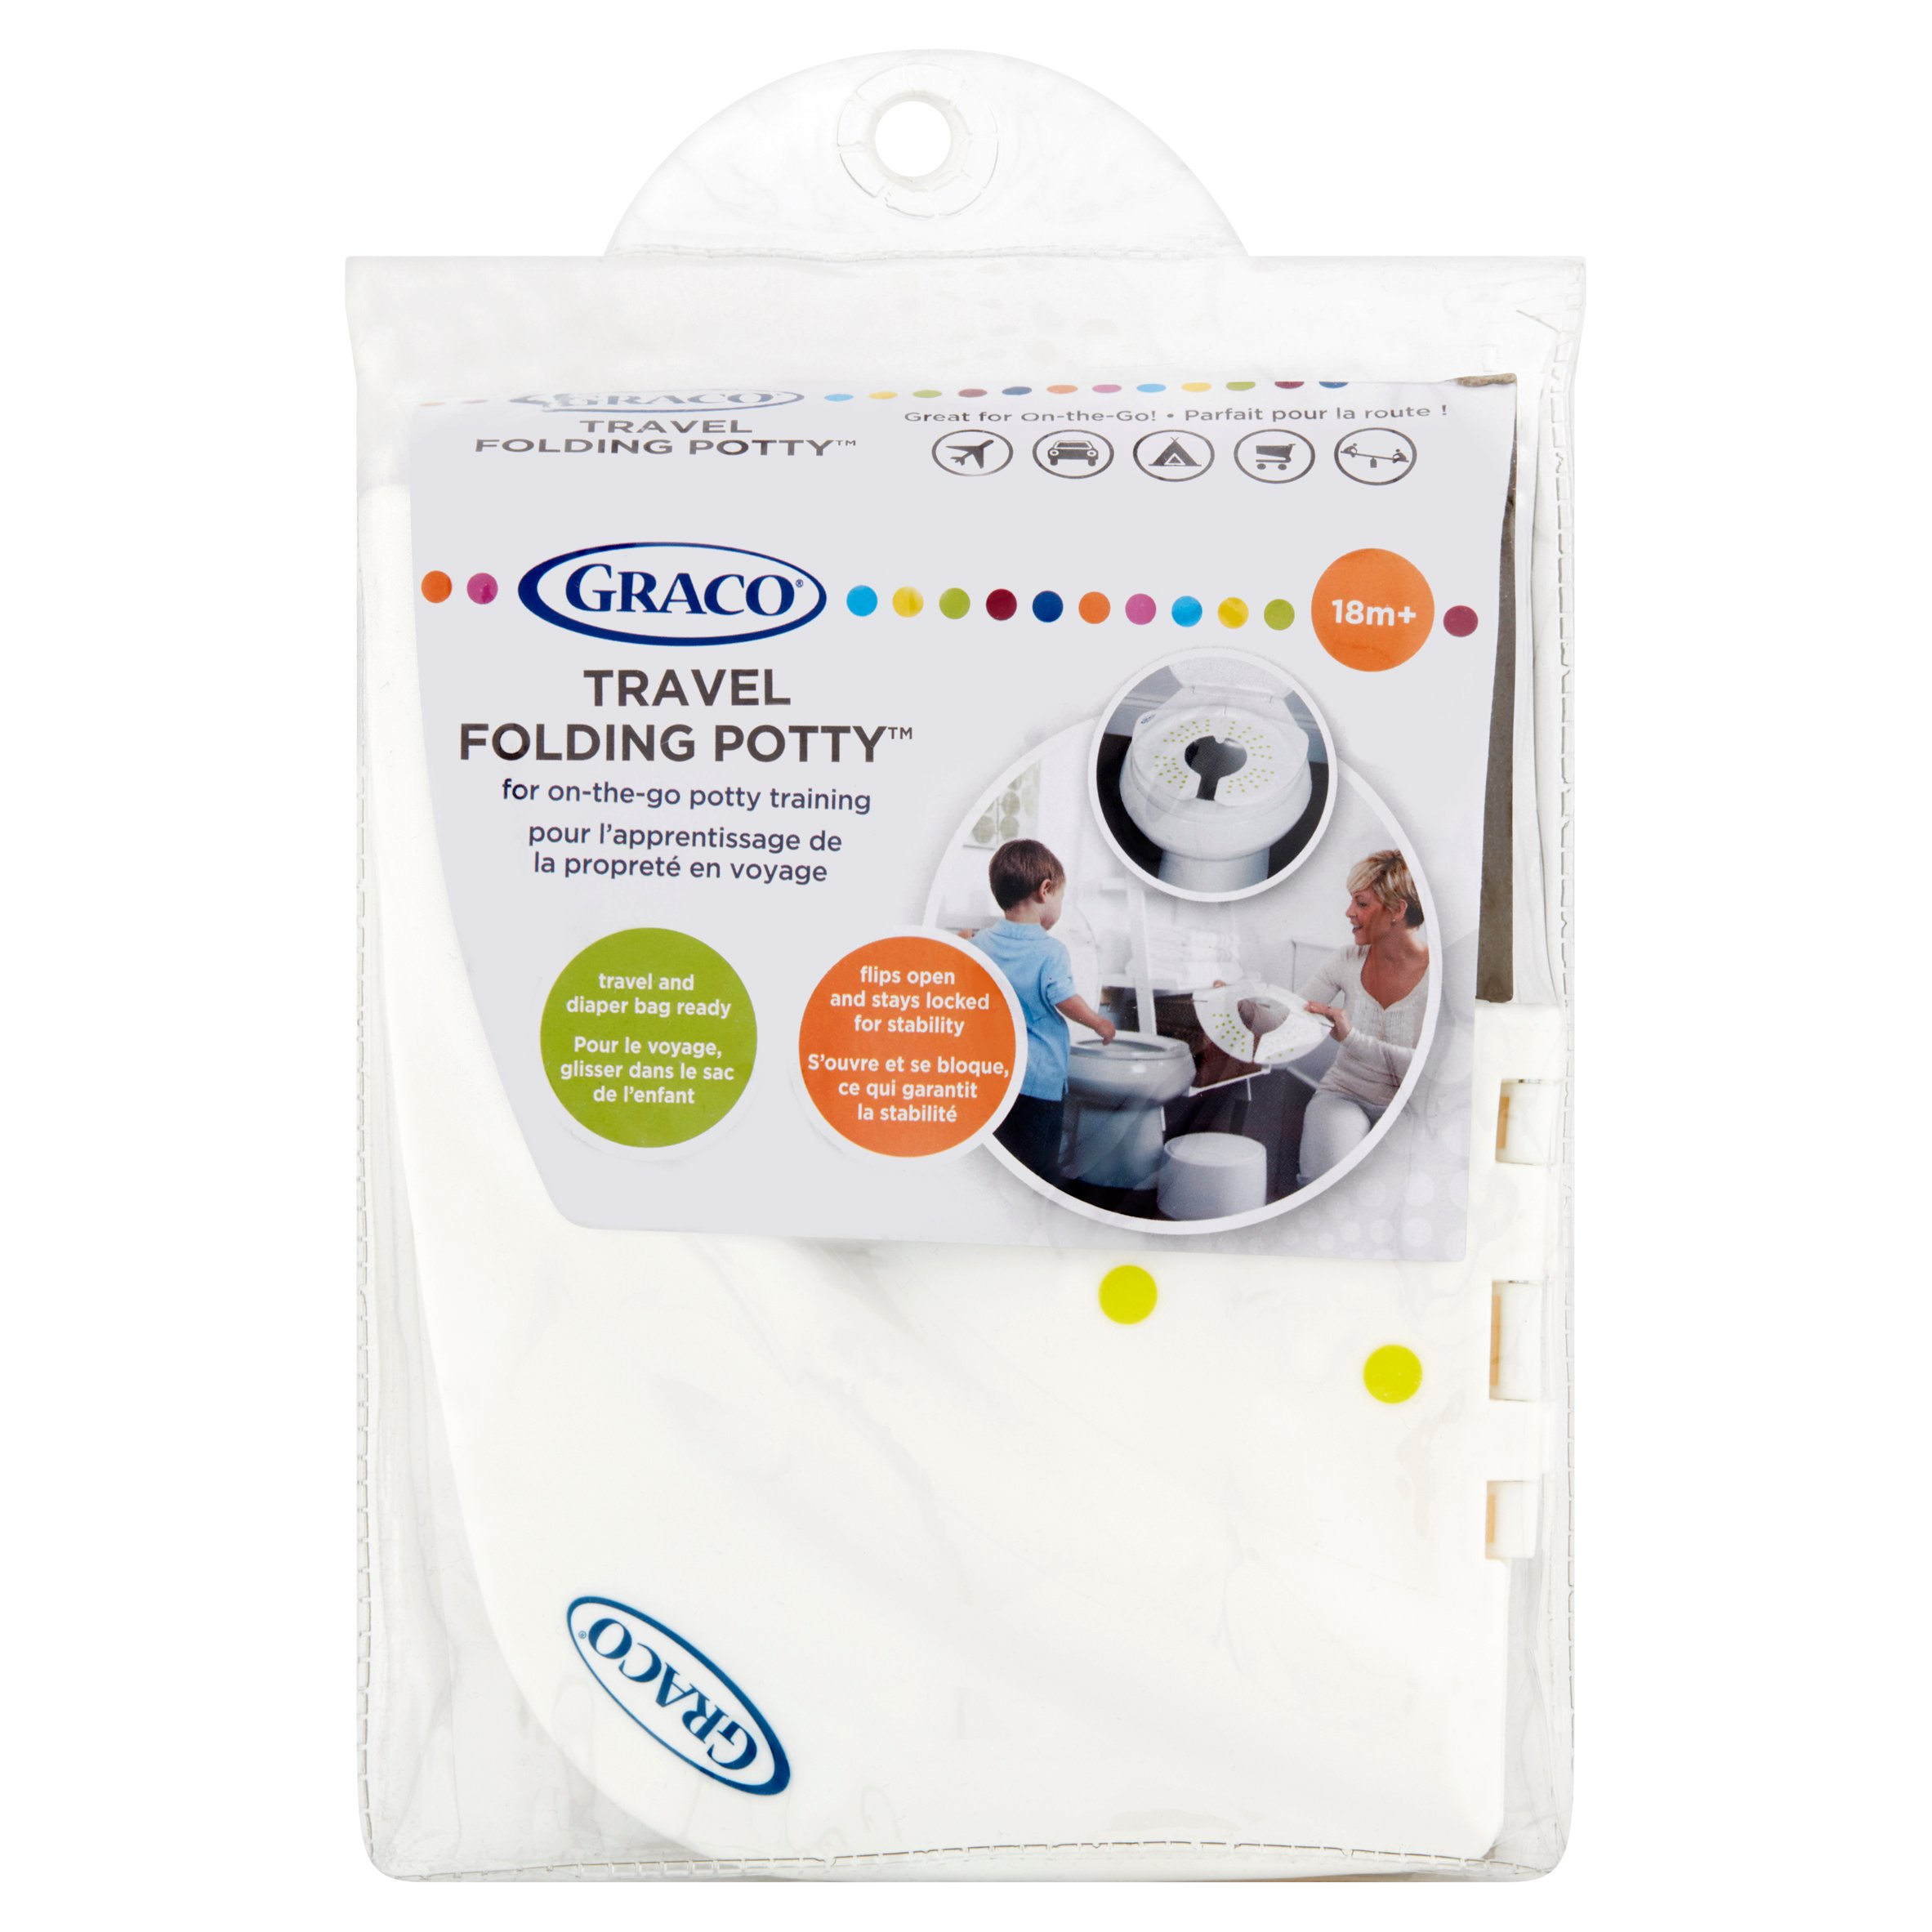 Graco Travel Folding Potty 18m+